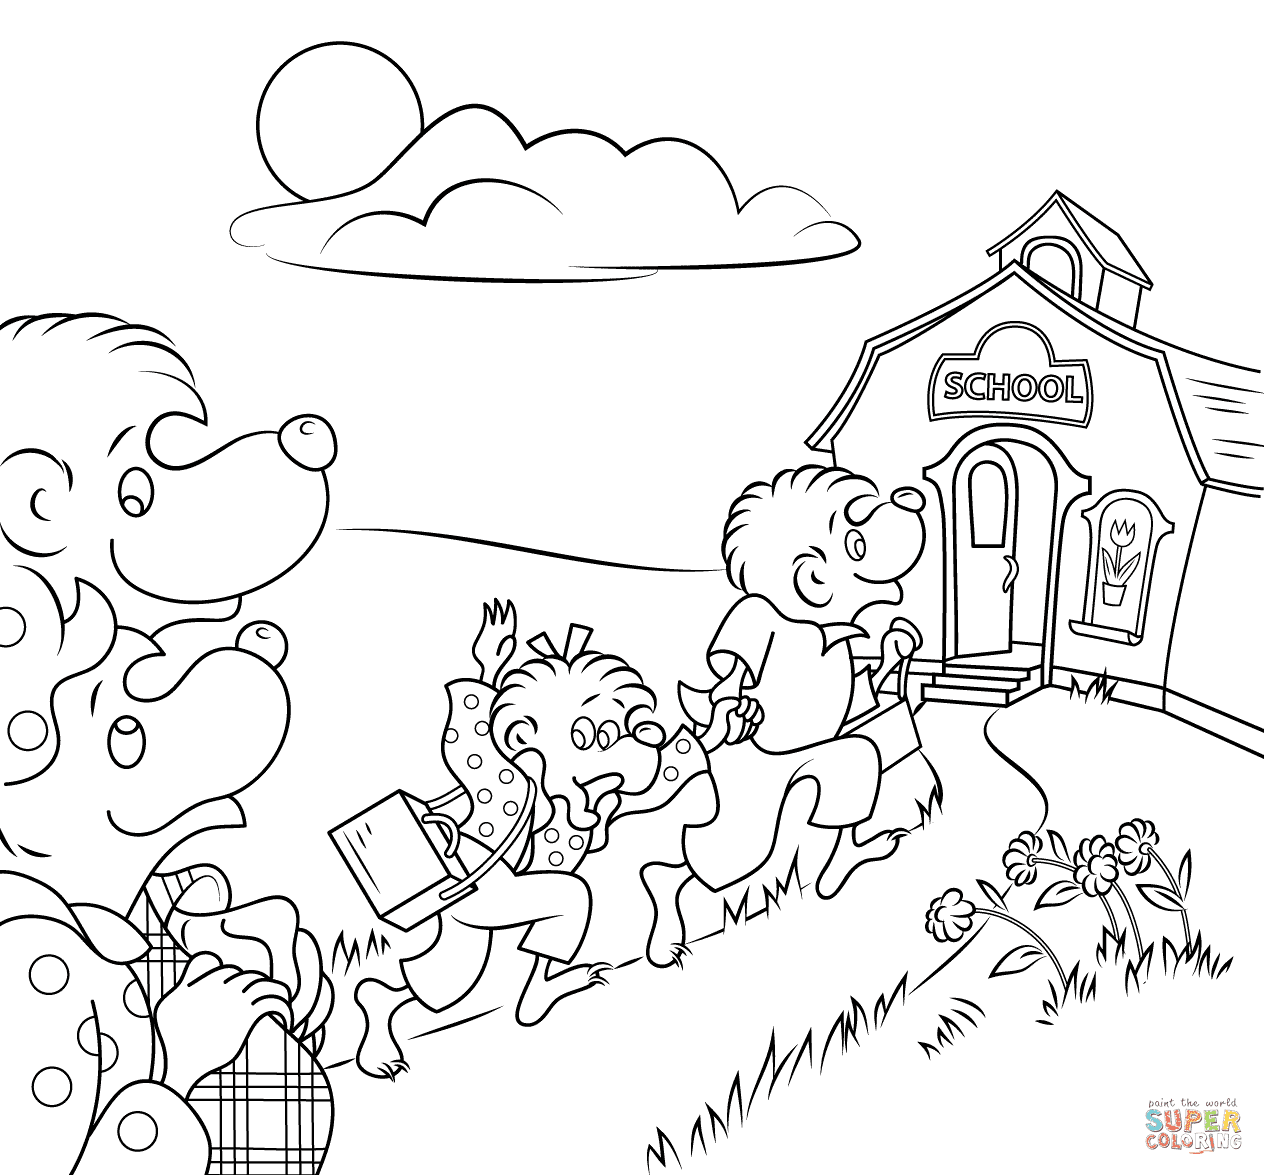 80 Free Coloring Pages About School Images & Pictures In HD